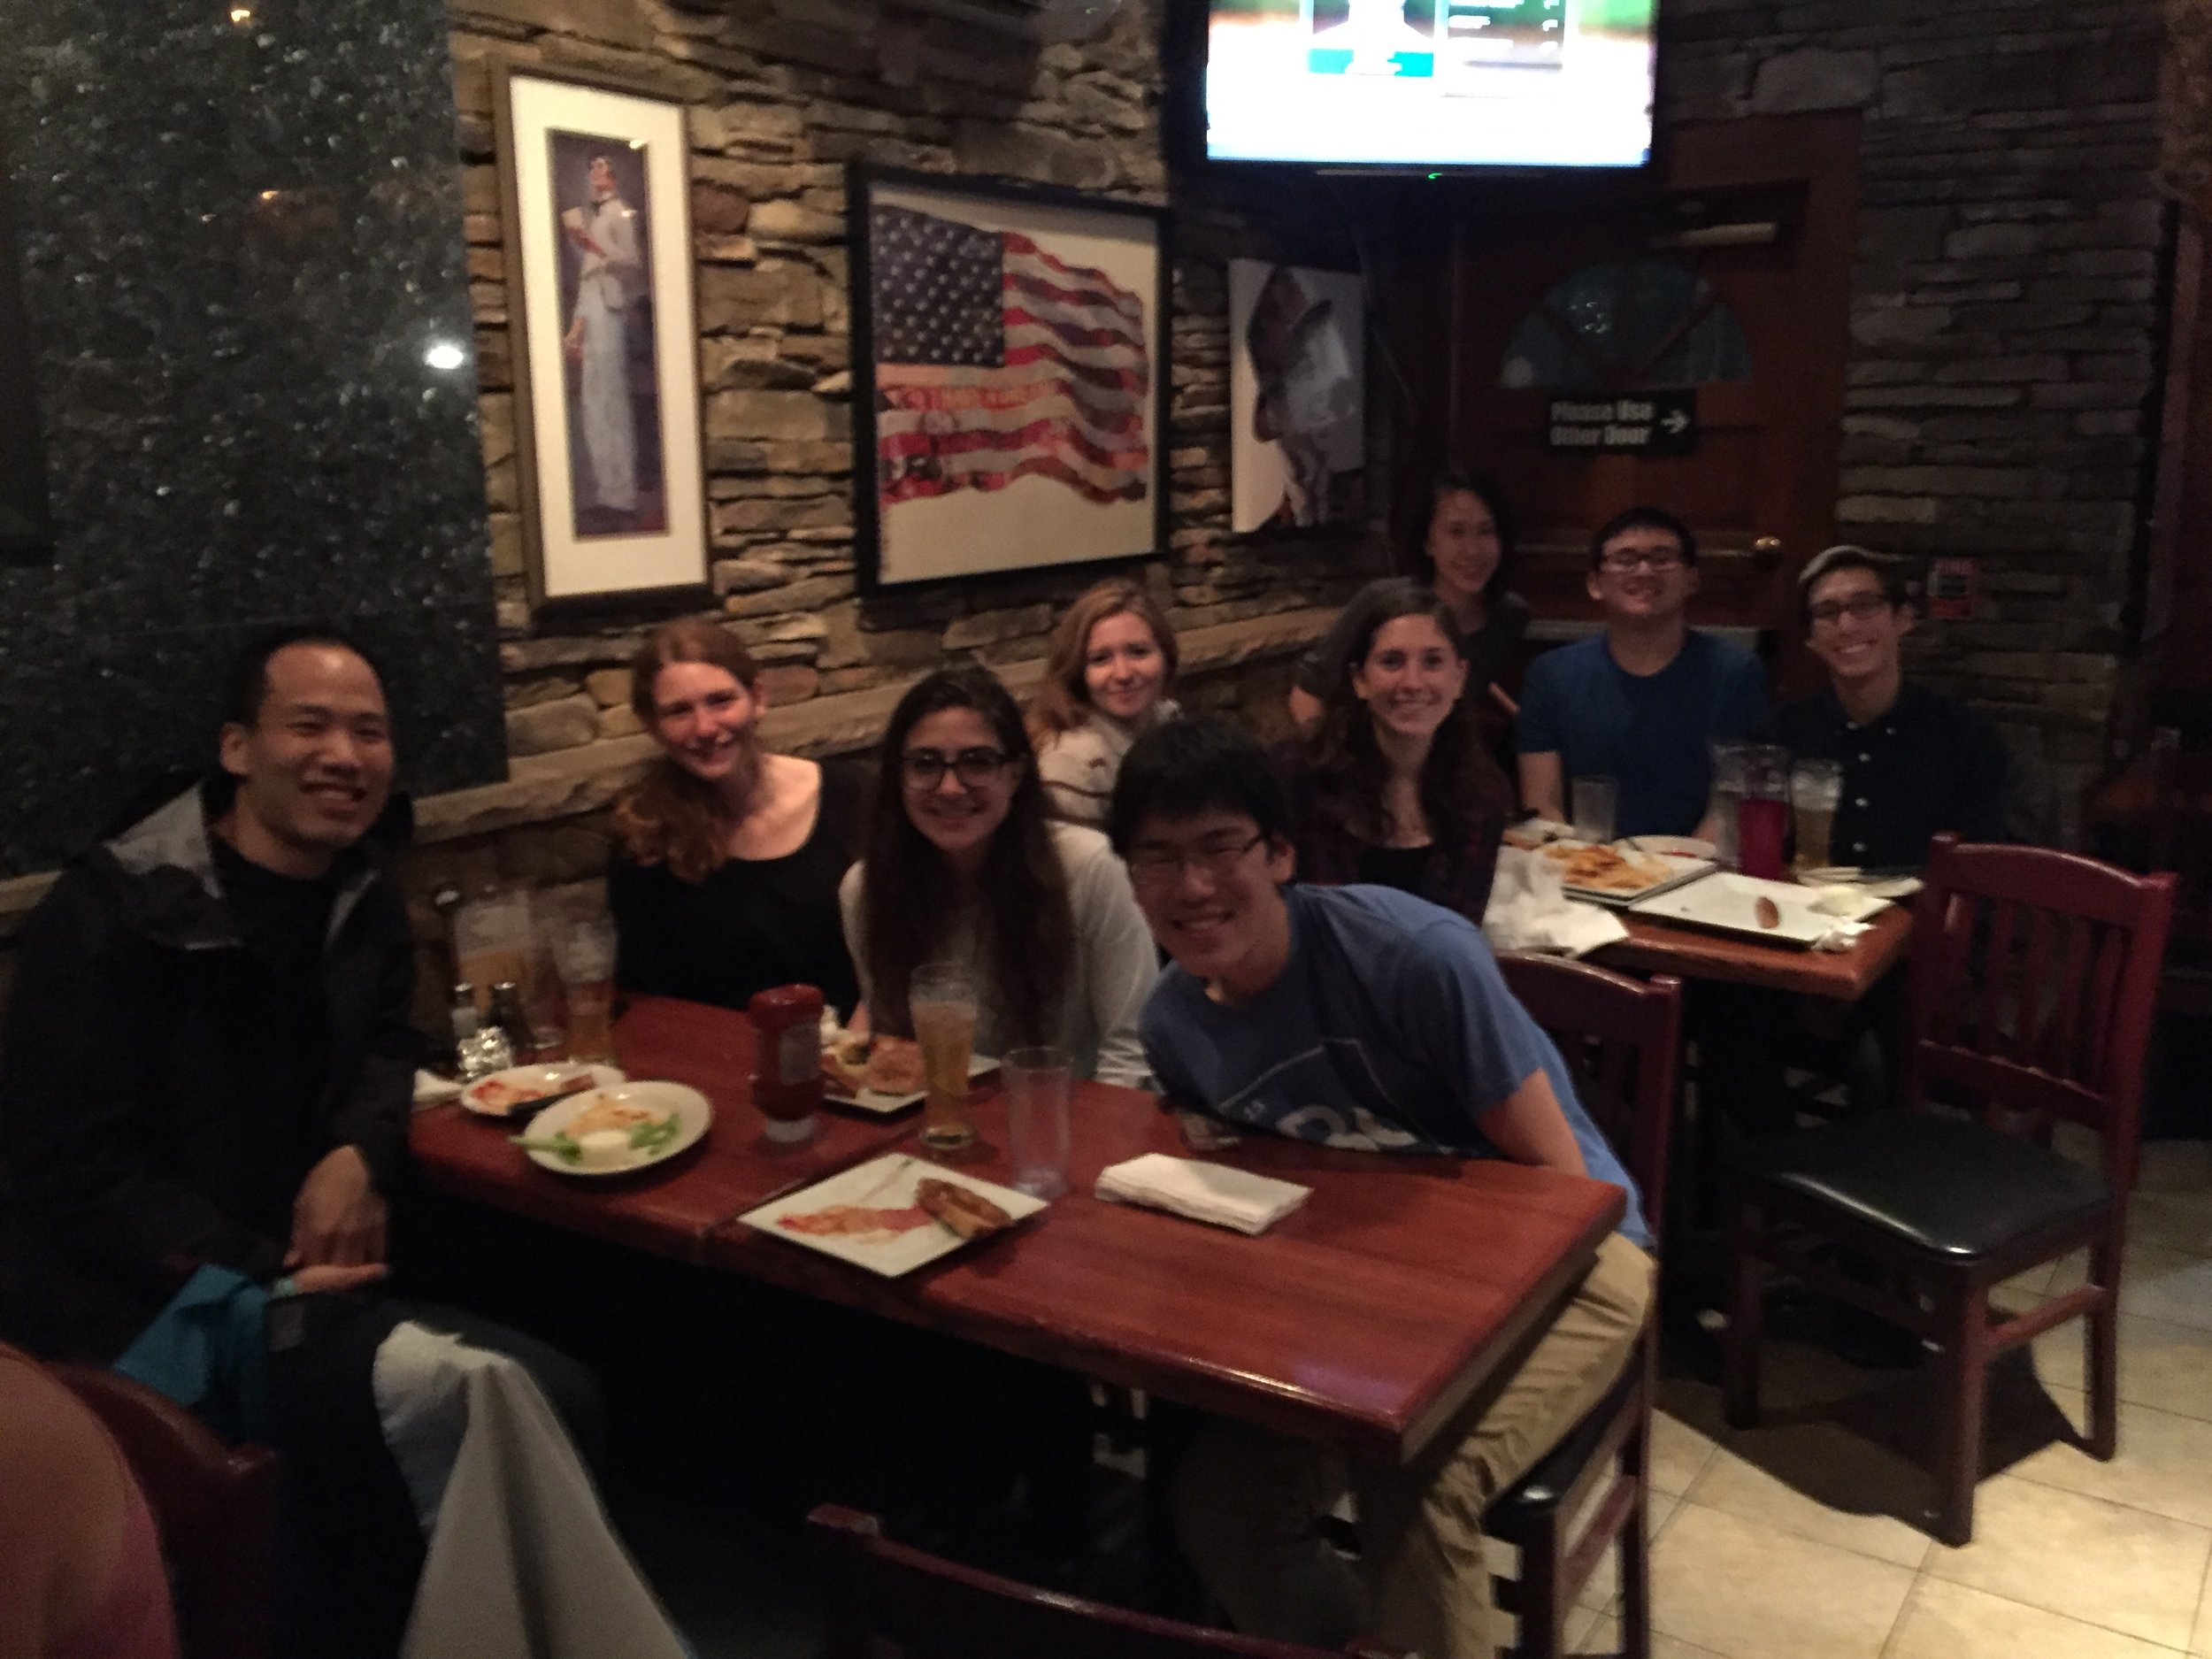 The Liau Lab enjoys beer and wholesome American food at a local watering hole, RF O'Sullivan's.